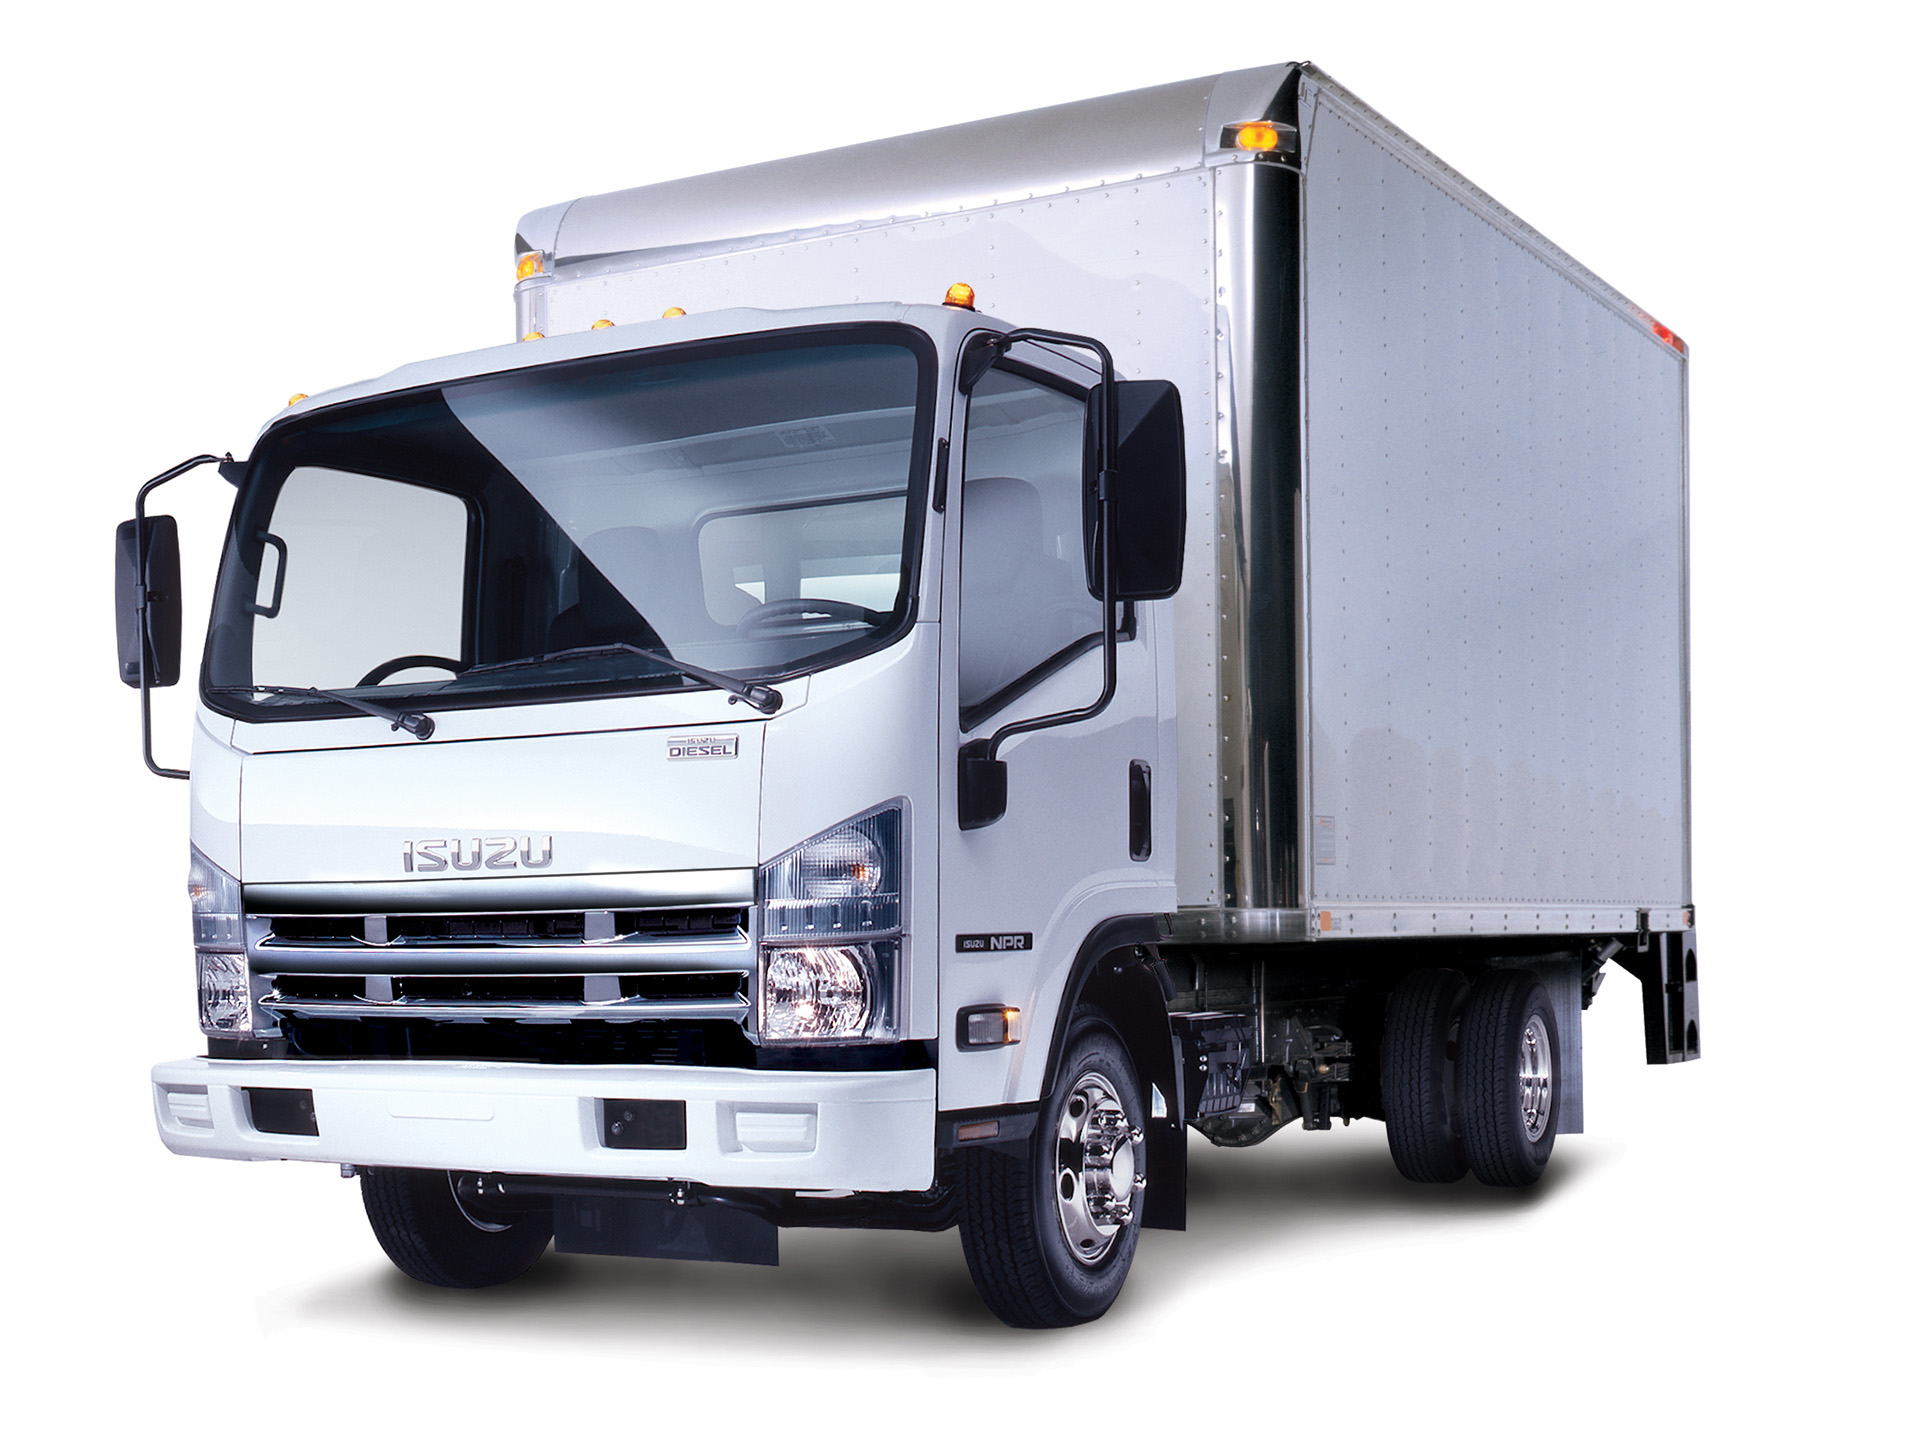 Isuzu n-series photo - 3